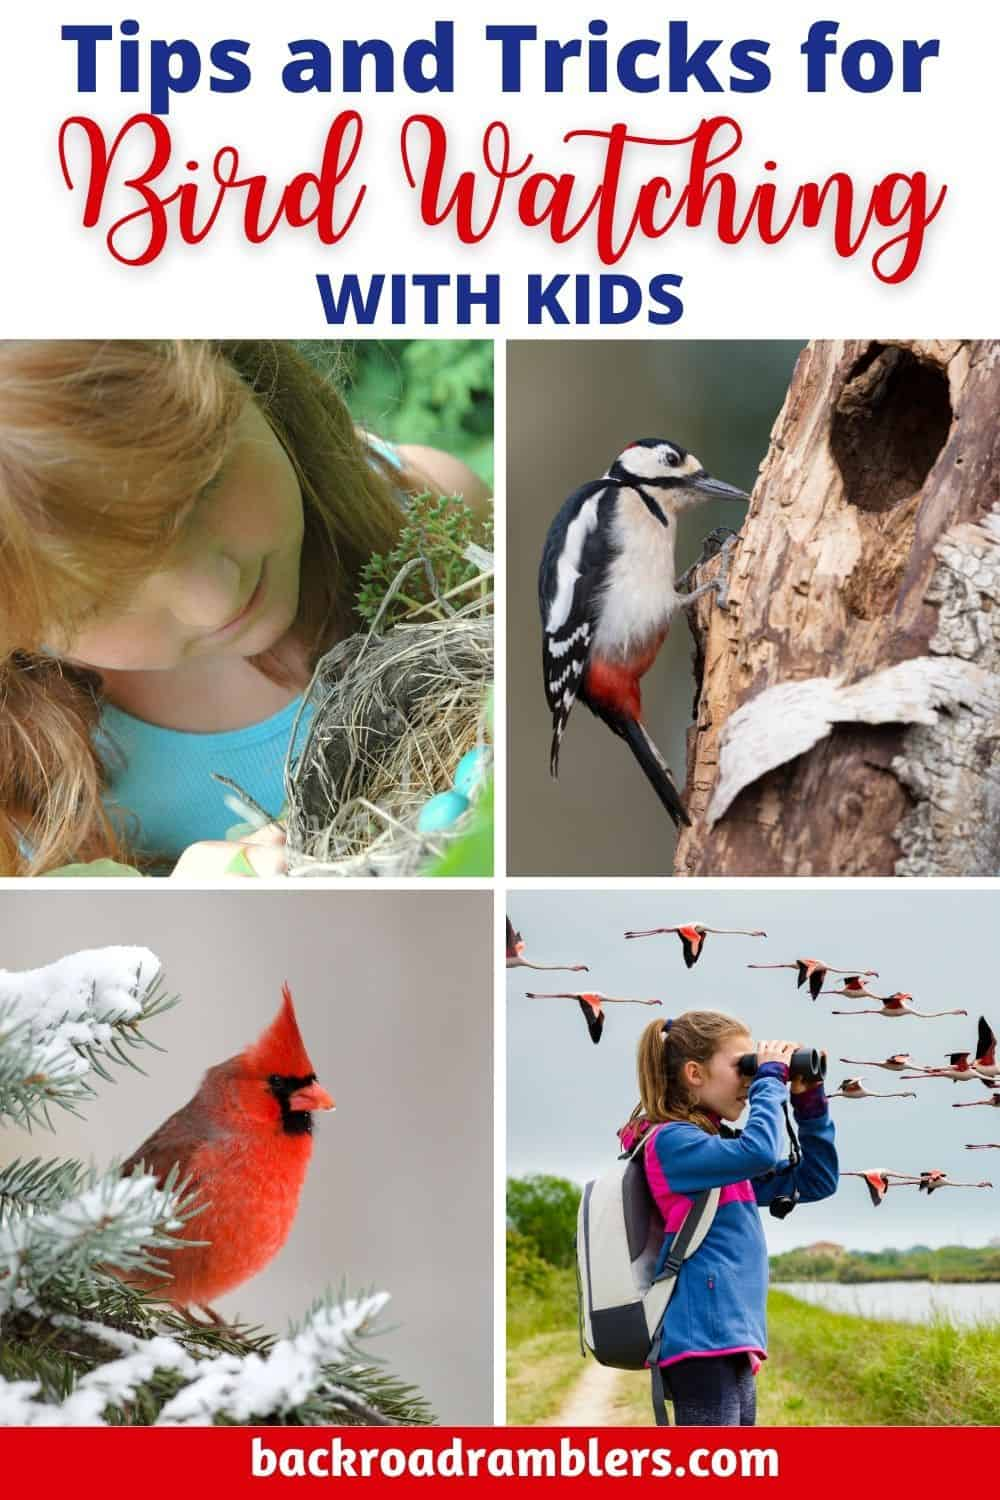 A collage of photos featuring kids watching the birds. Caption reads: Tips and Tricks for Bird Watching with Kids.